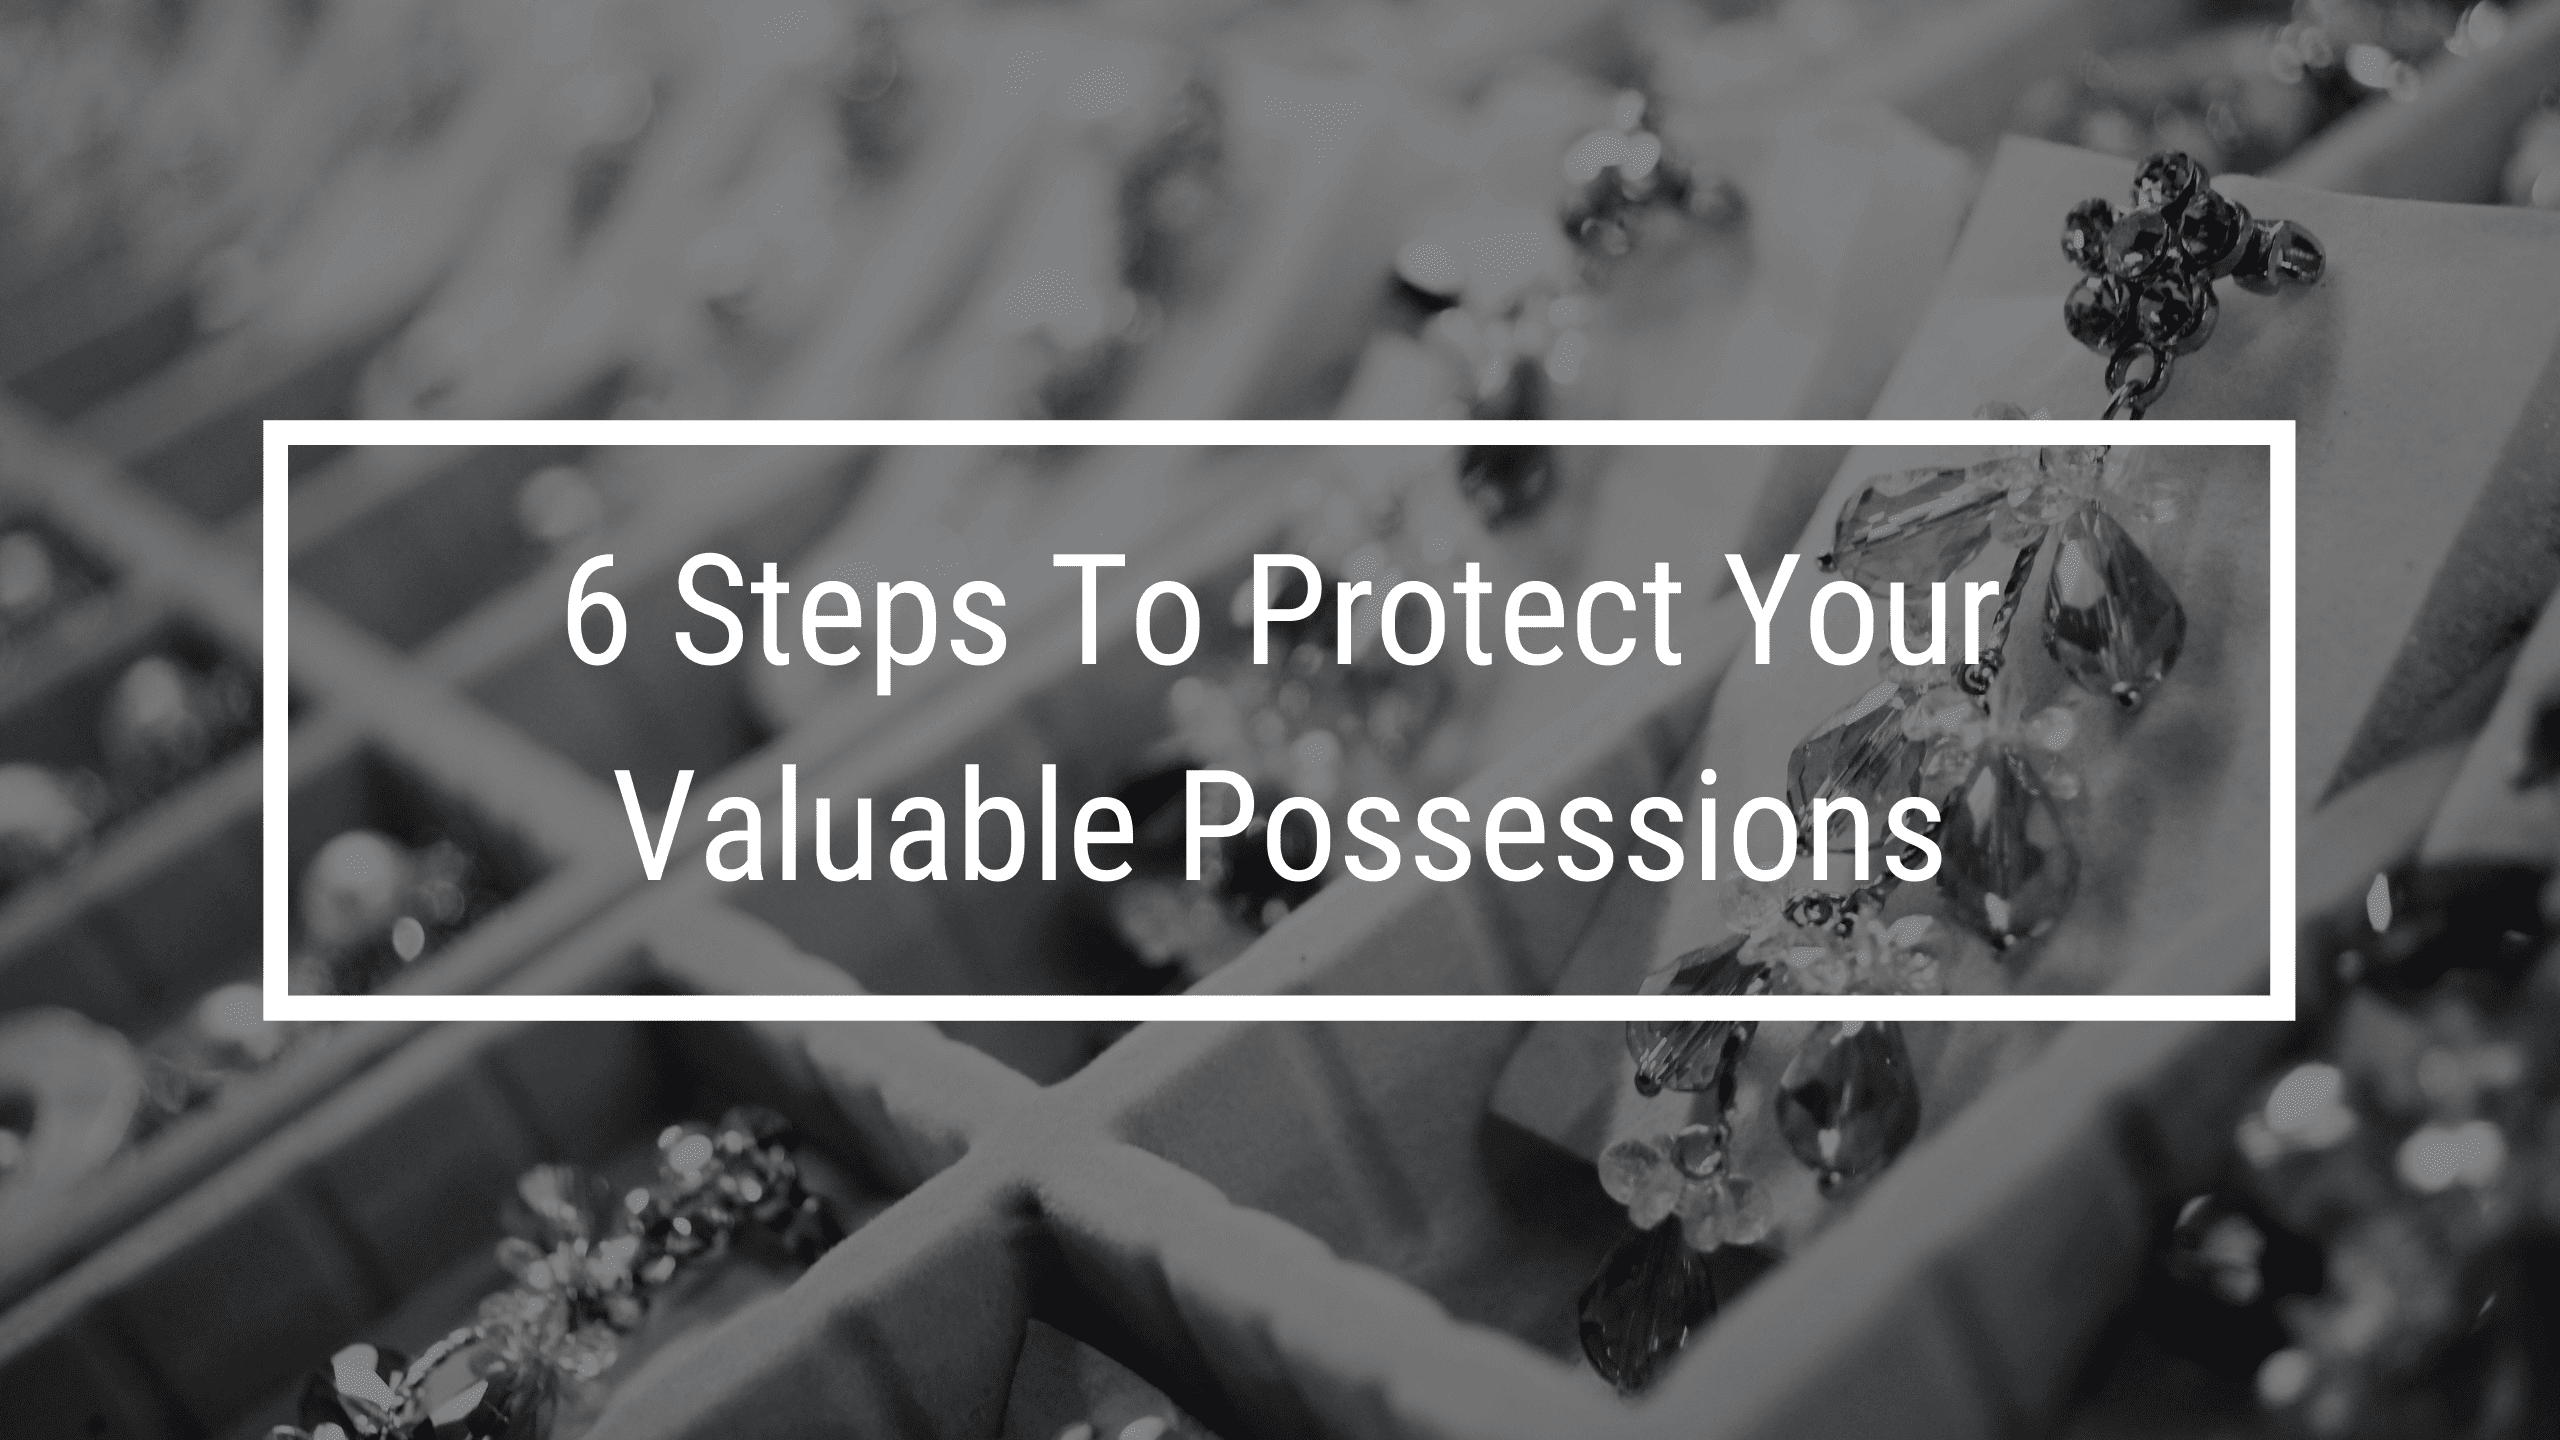 6 steps to protecting your valuable possessions. Valuable jewelry in background of image.